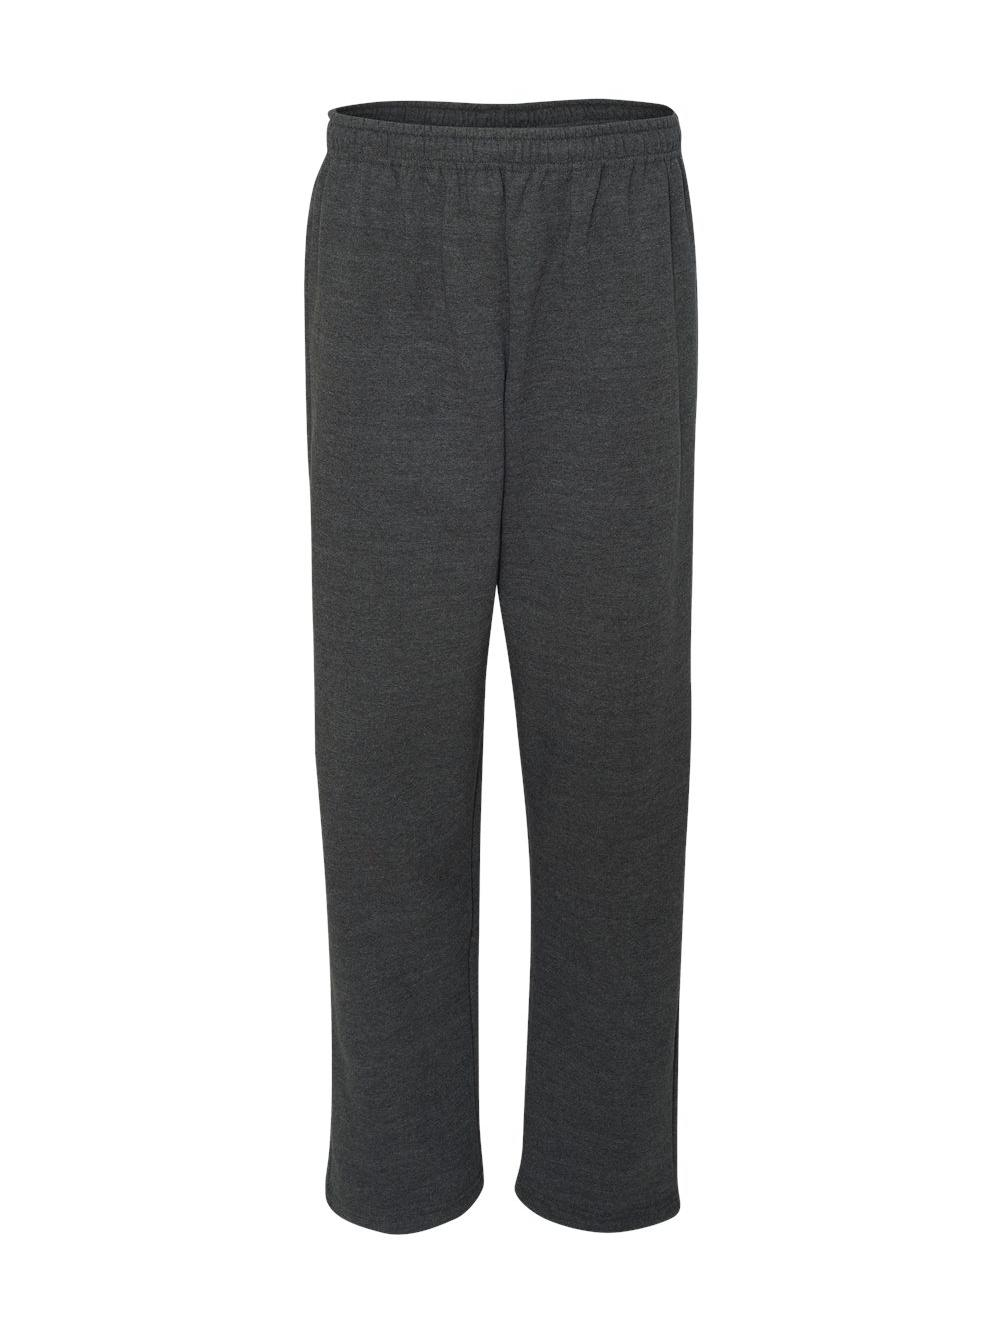 Gildan-Heavy-Blend-Open-Bottom-Sweatpants-18400 thumbnail 12